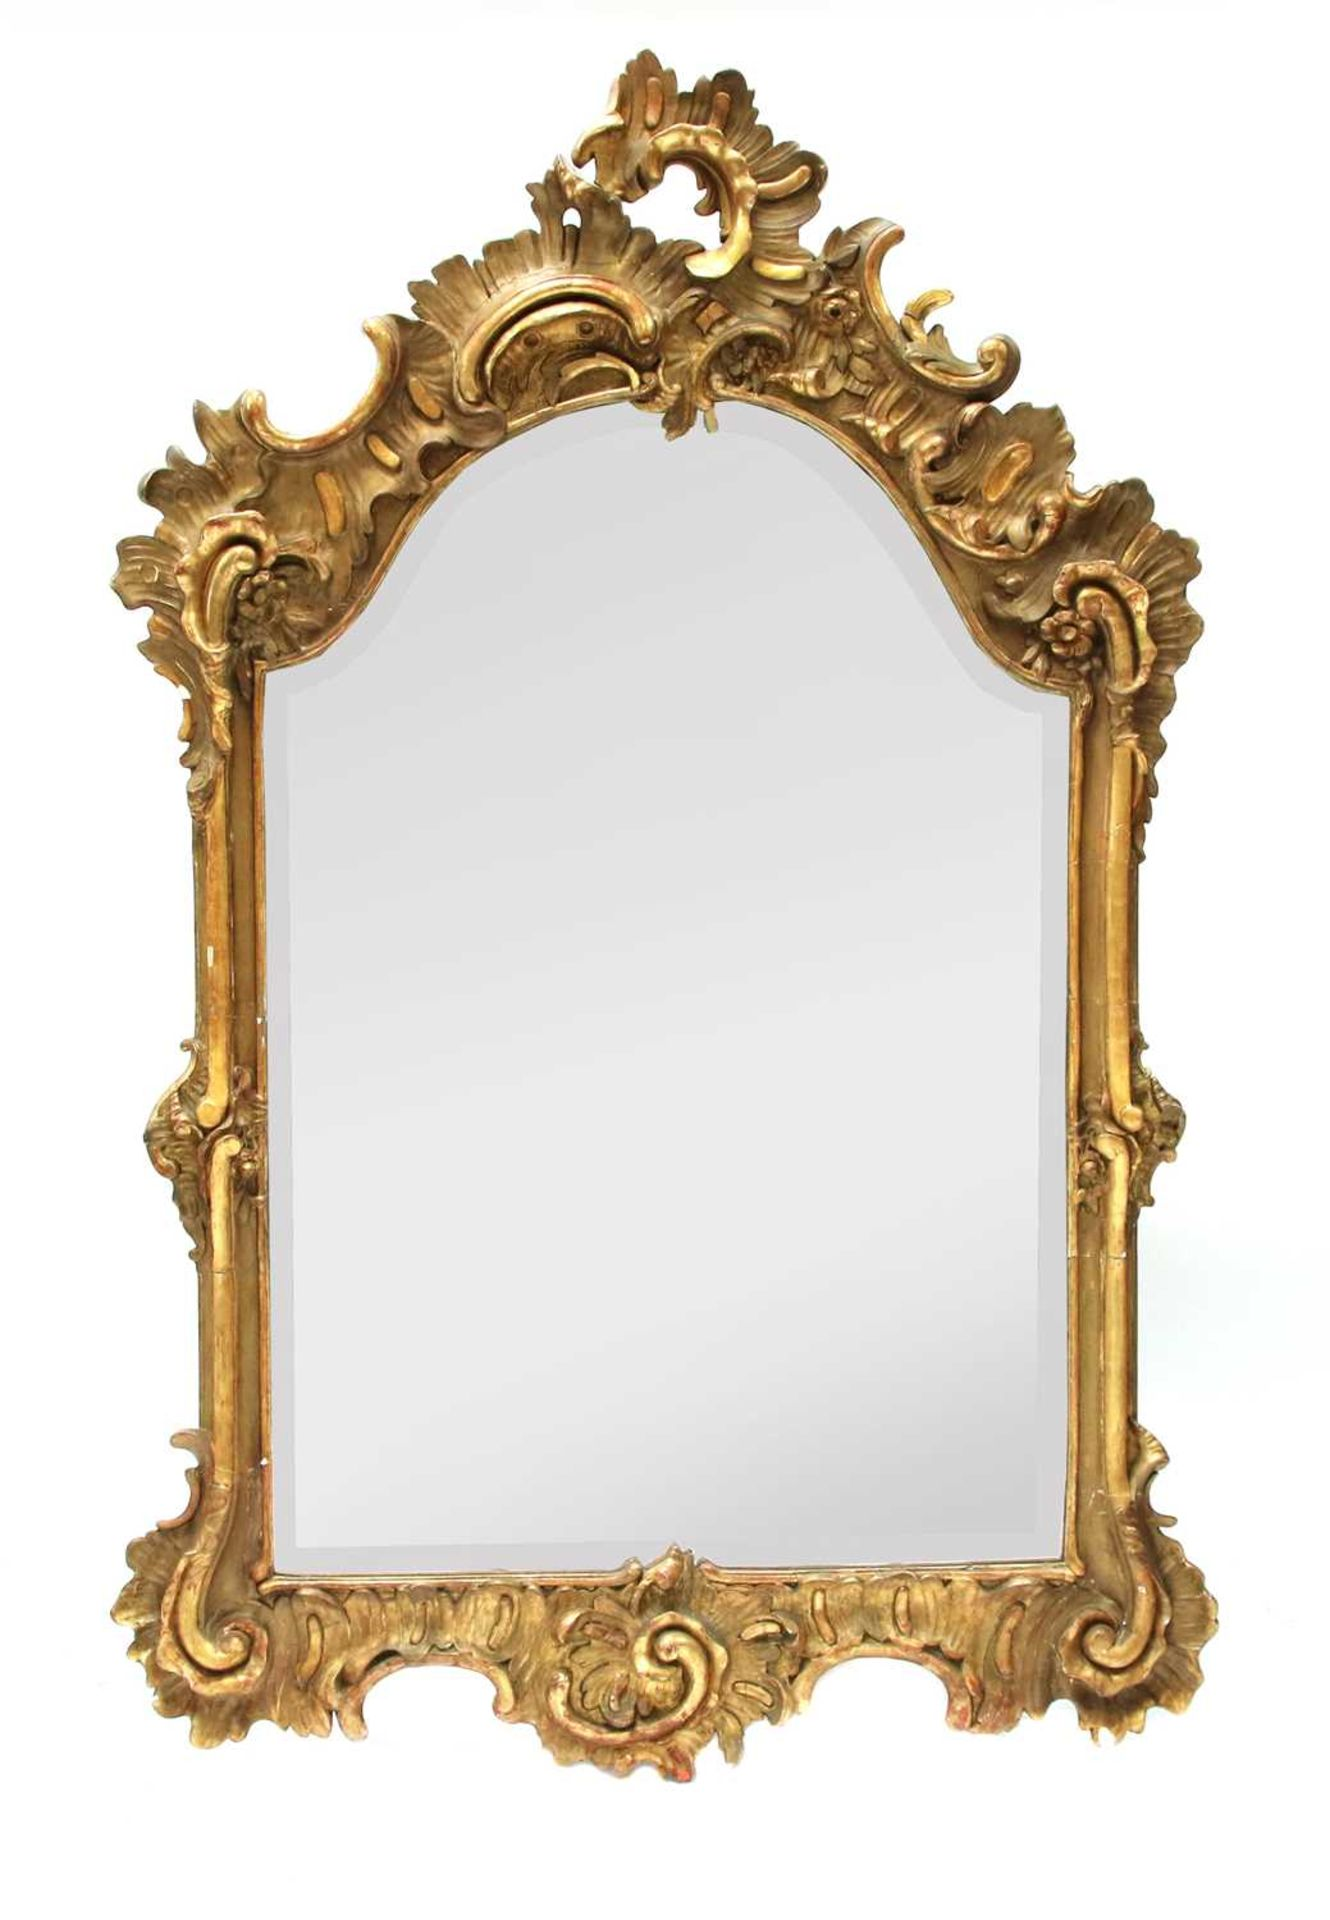 A north European giltwood and gilt composition wall mirror,